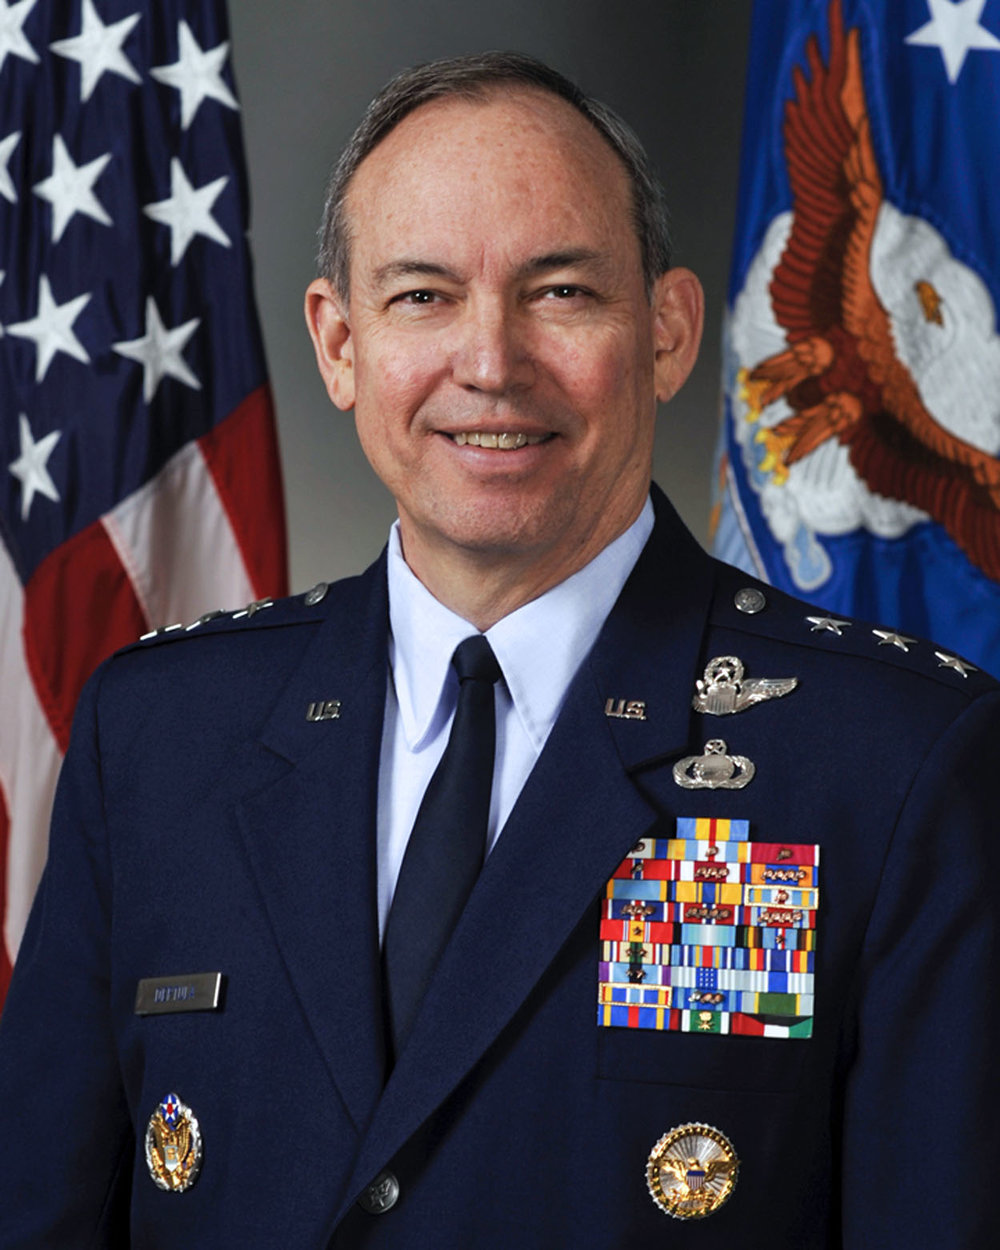 Lt Gen (ret) David A. Deptula (U.S. Air Force Photo)